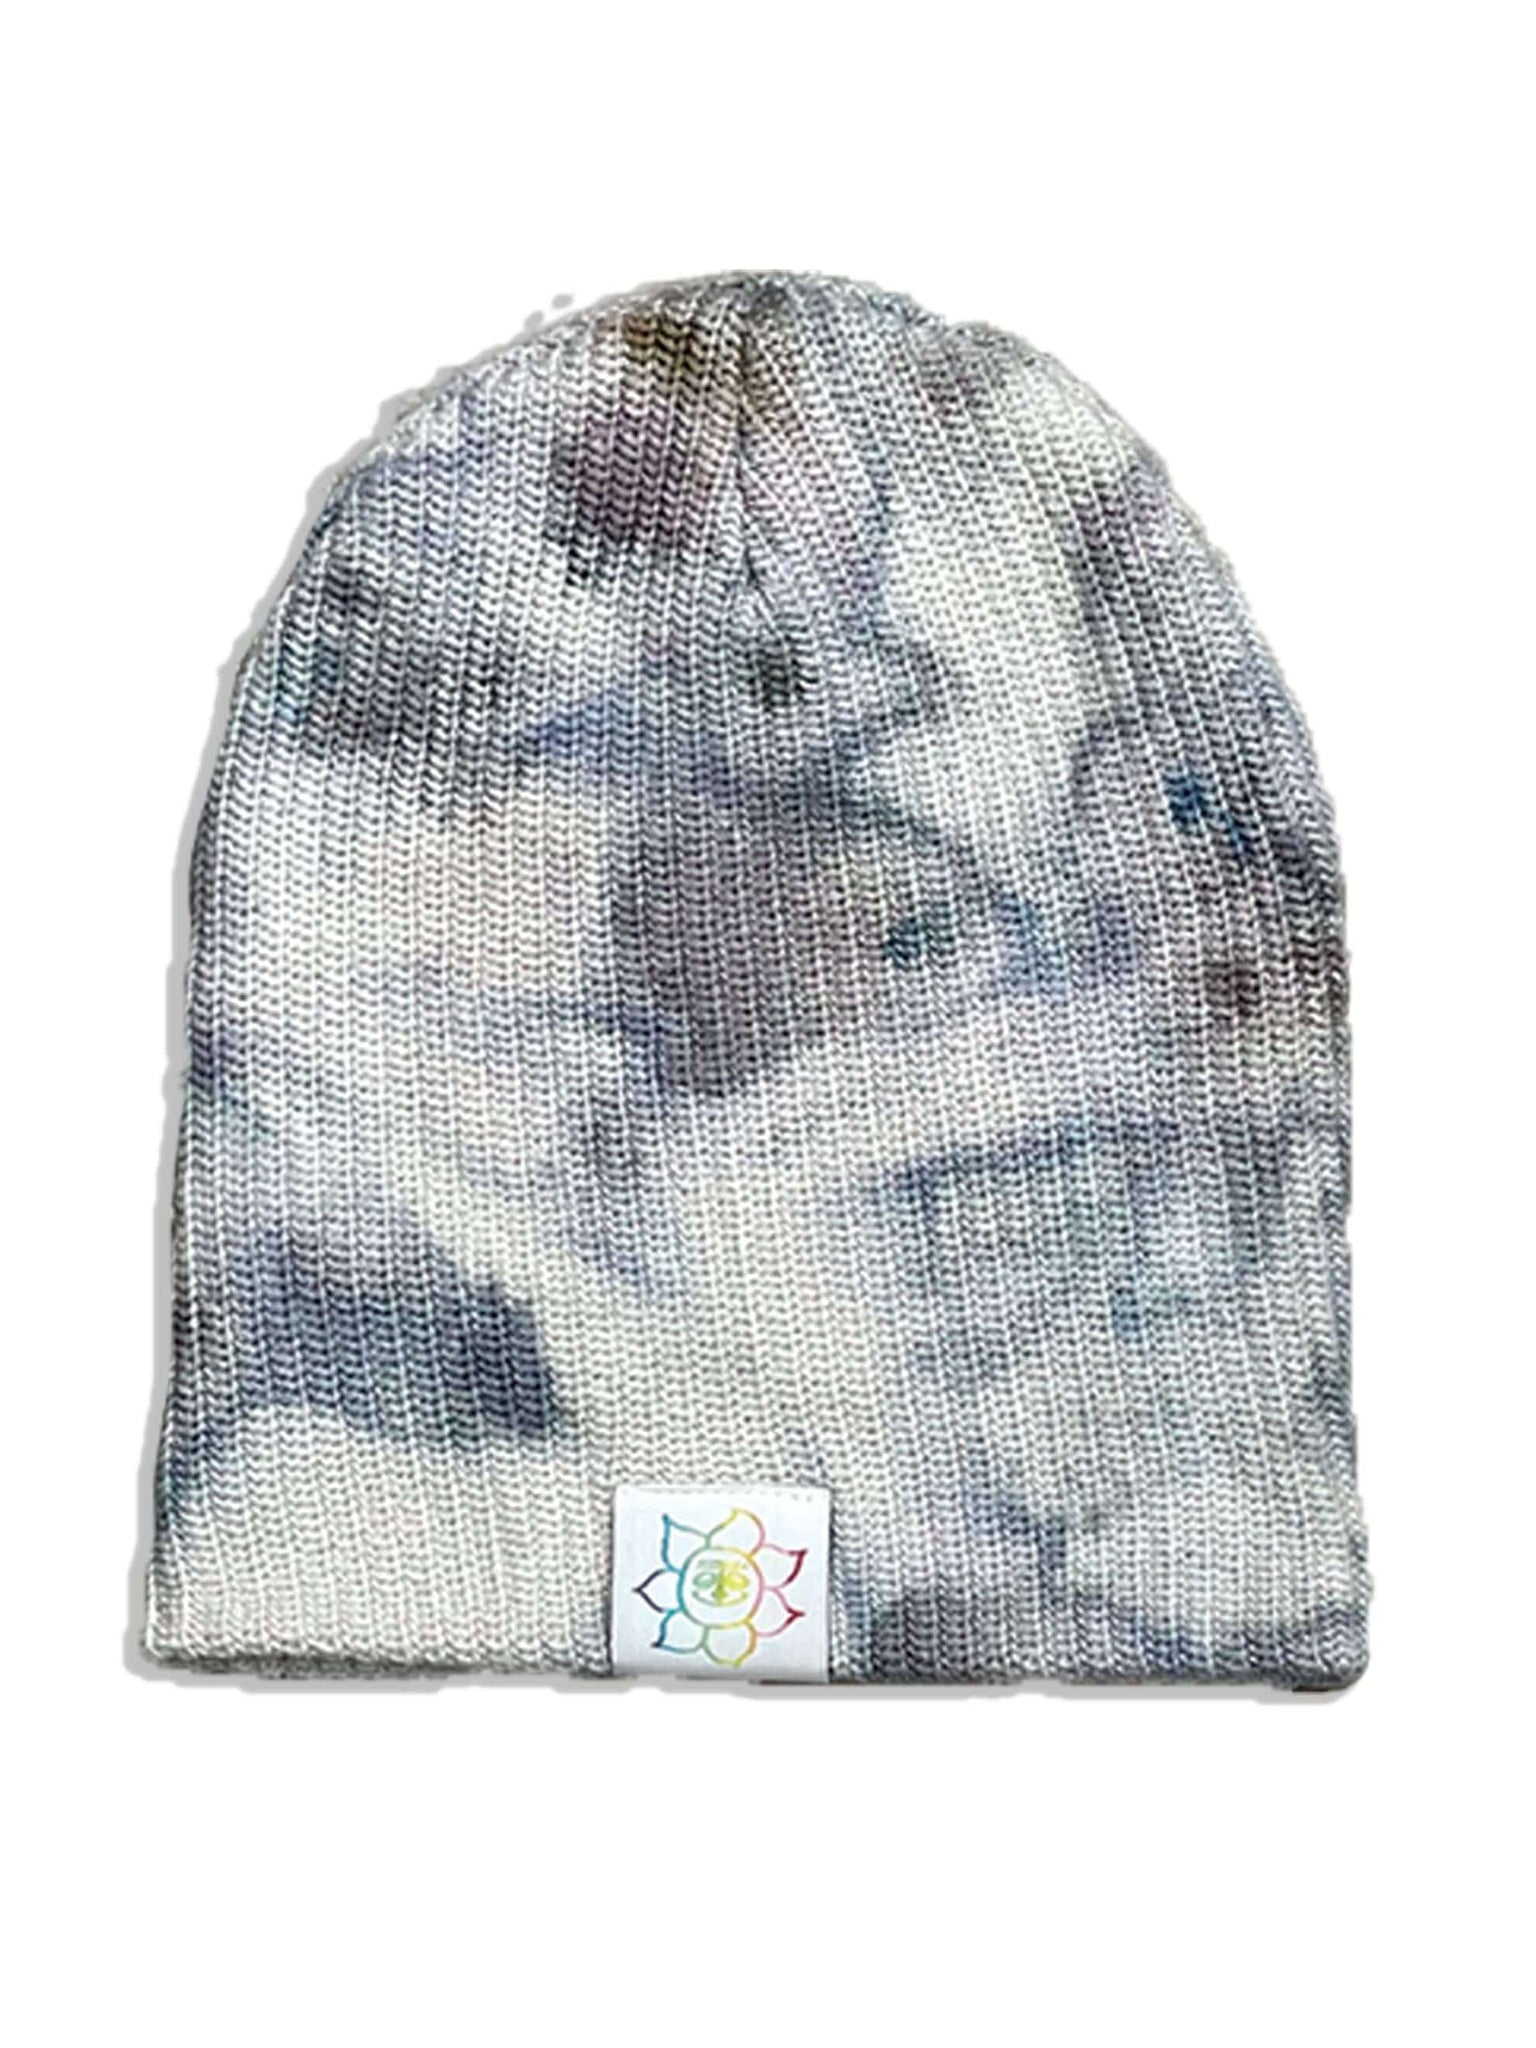 Camp High Dark Indigo Ice dyed Beanie